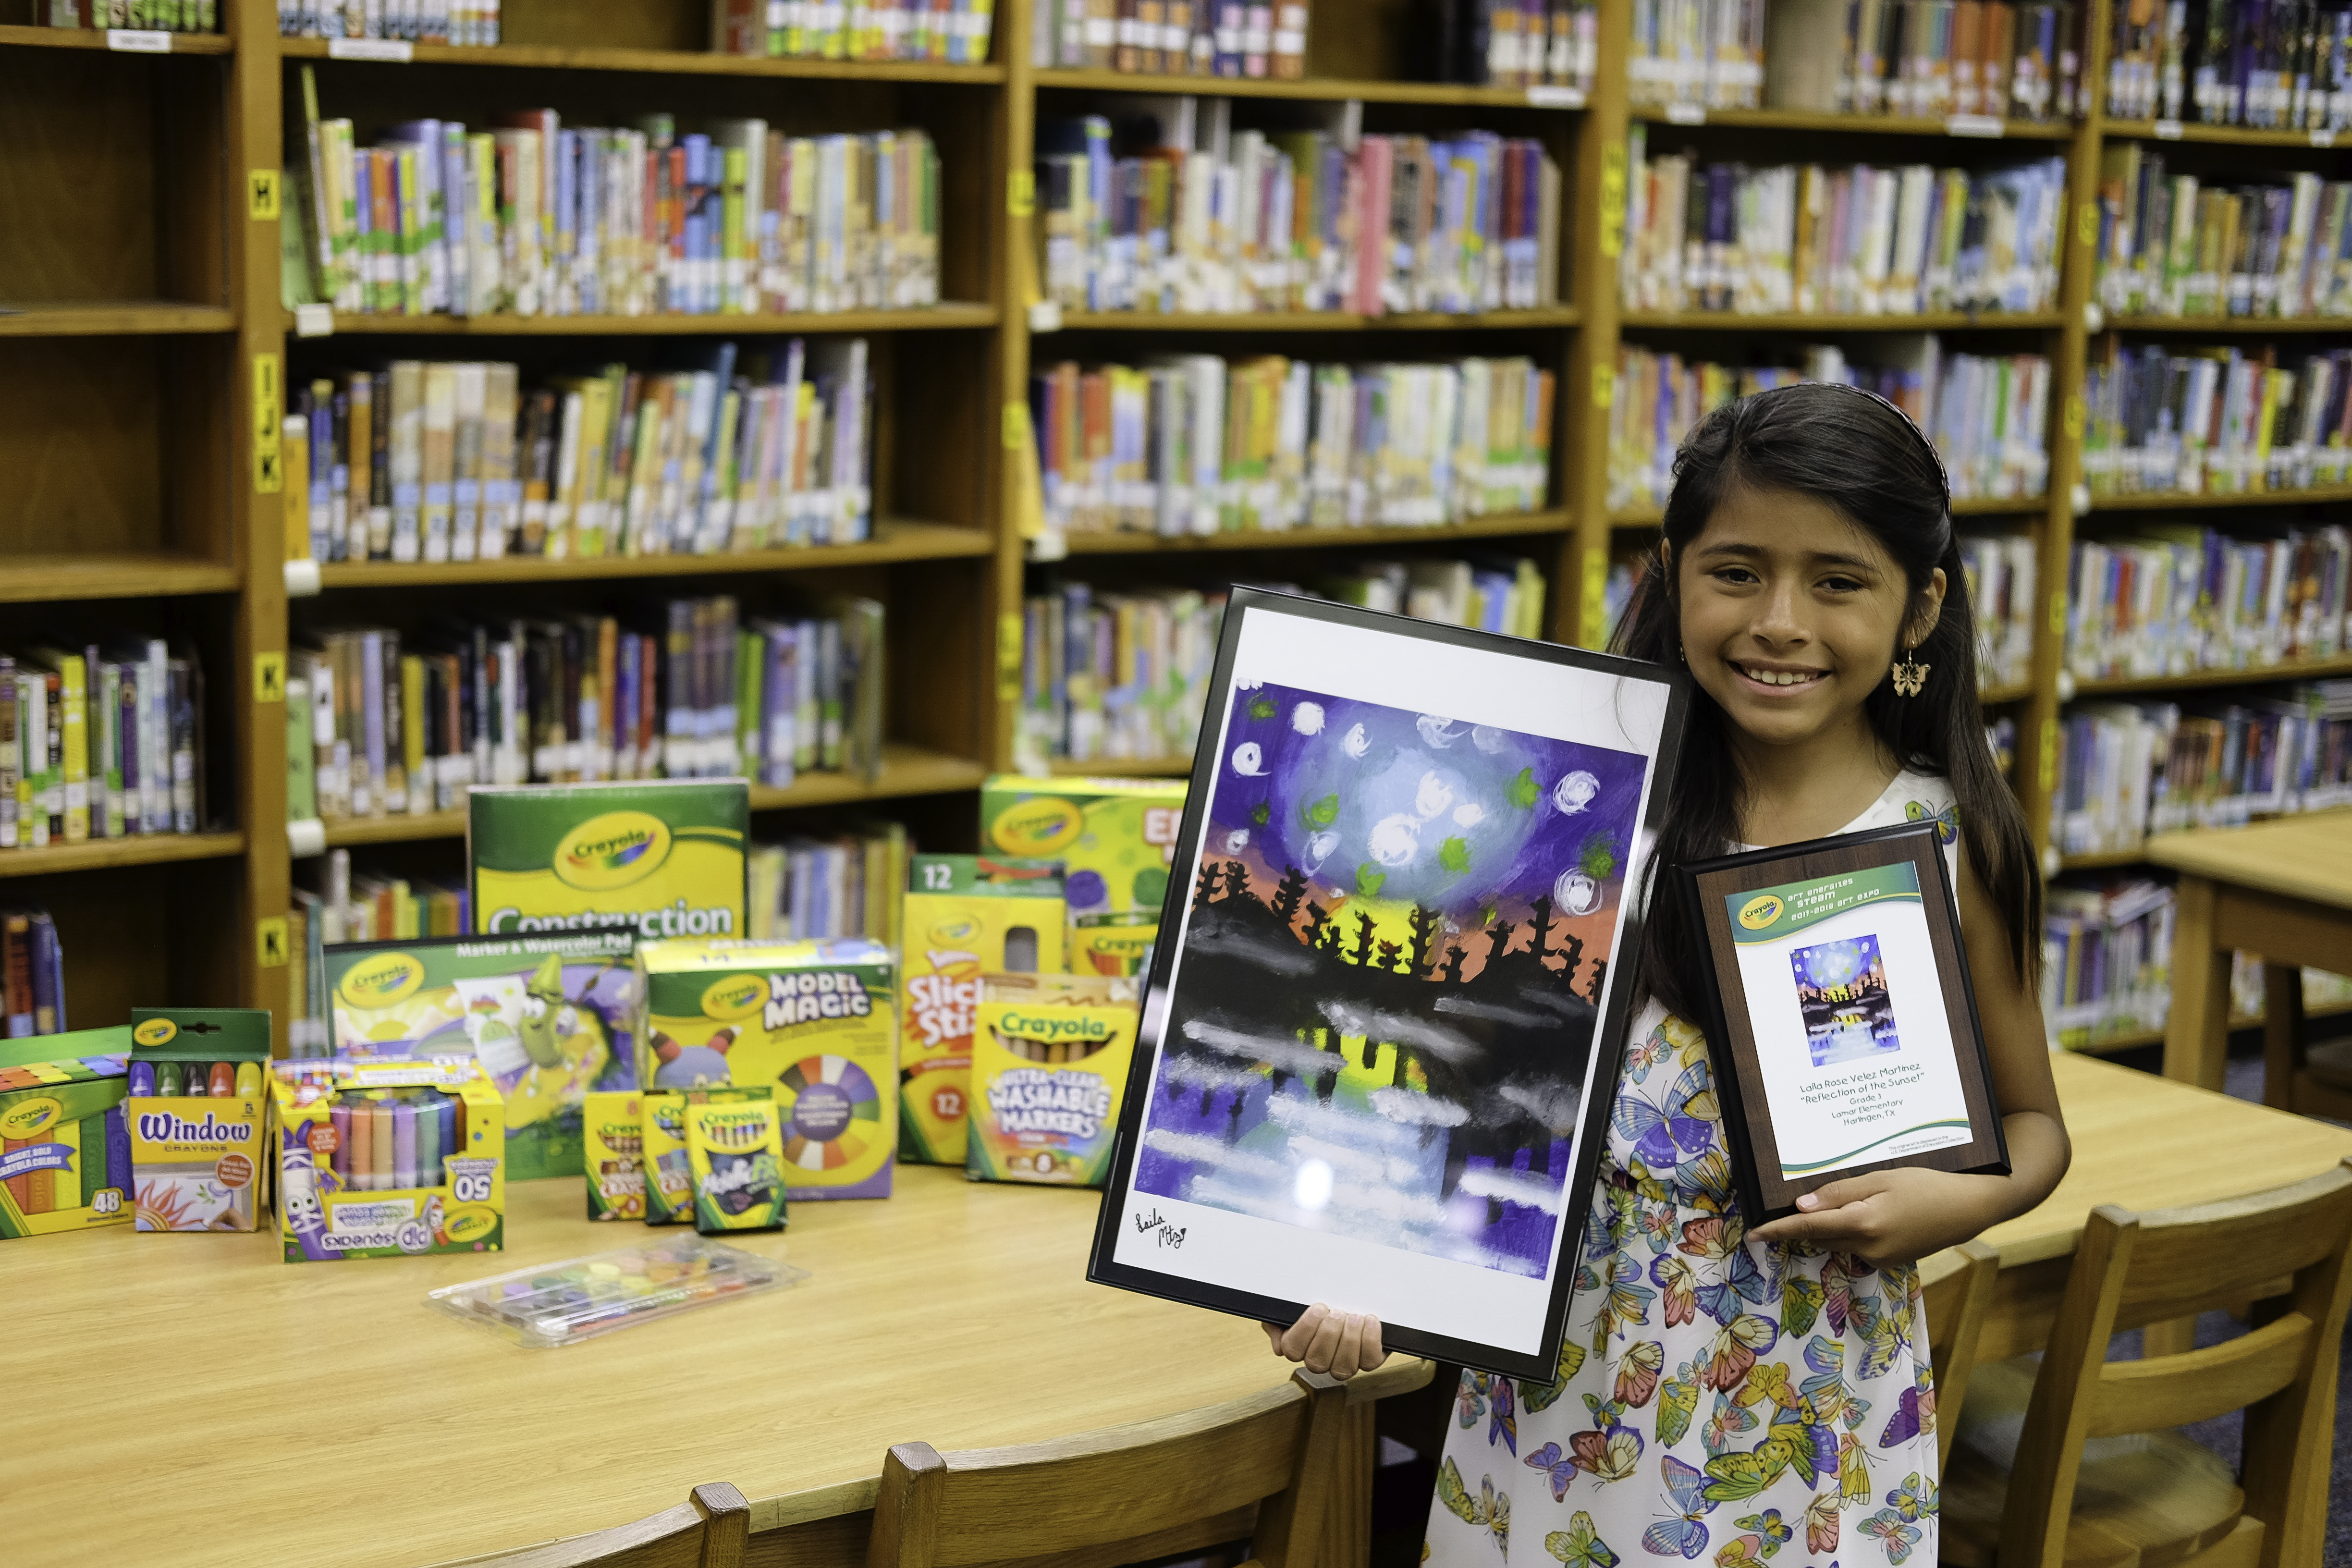 Third-grader receives national recognition in Crayola Art Expo